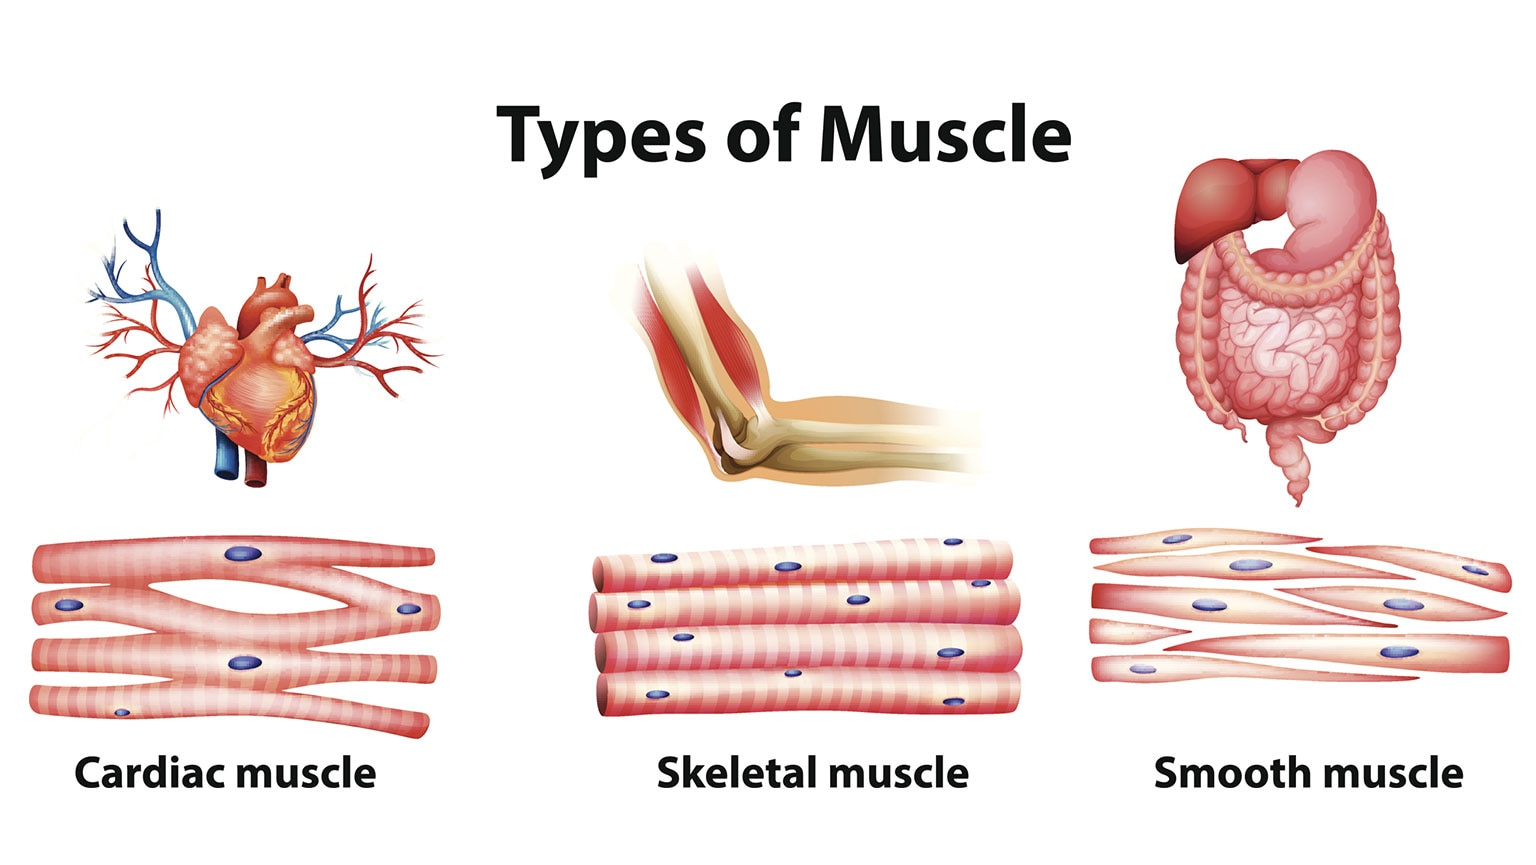 Musculoskeletal System—Anatomy of the Muscles